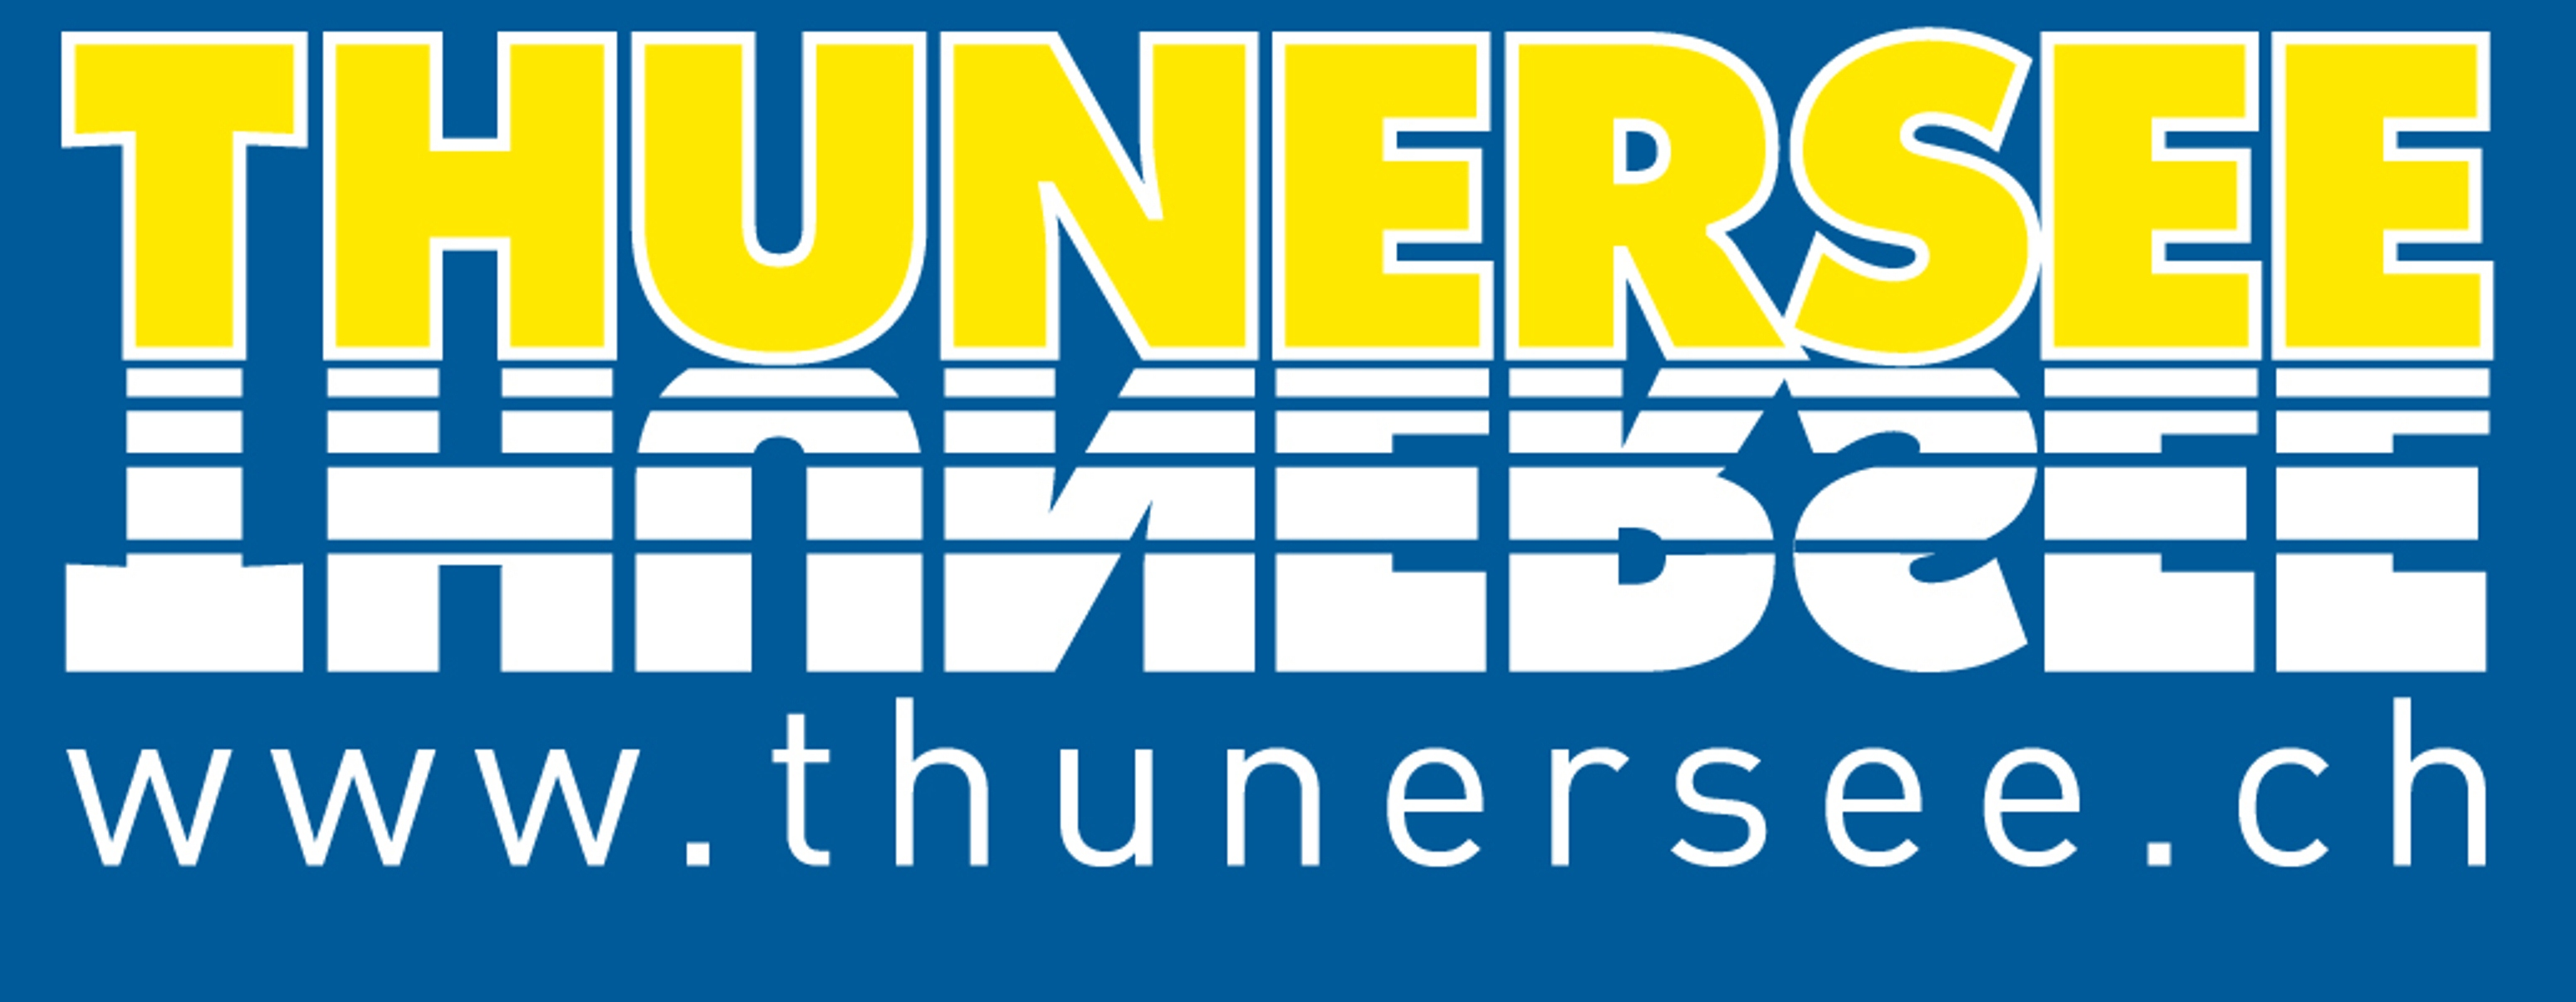 Logo Thunersee mit www.thunersee jpg